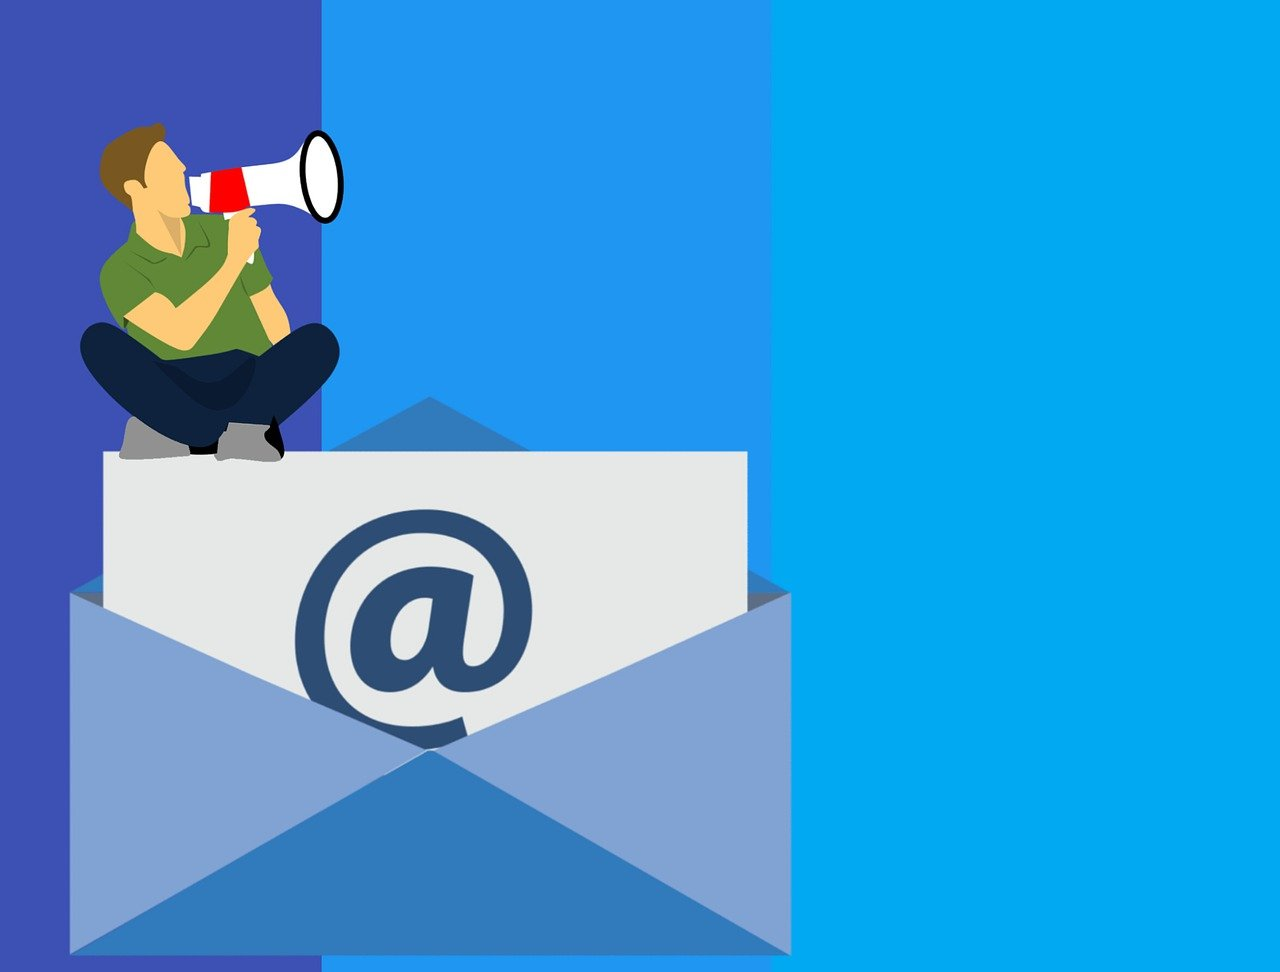 email-subject-lines-to-increase-open-rates-www.infinitymgroup.com_.jpg